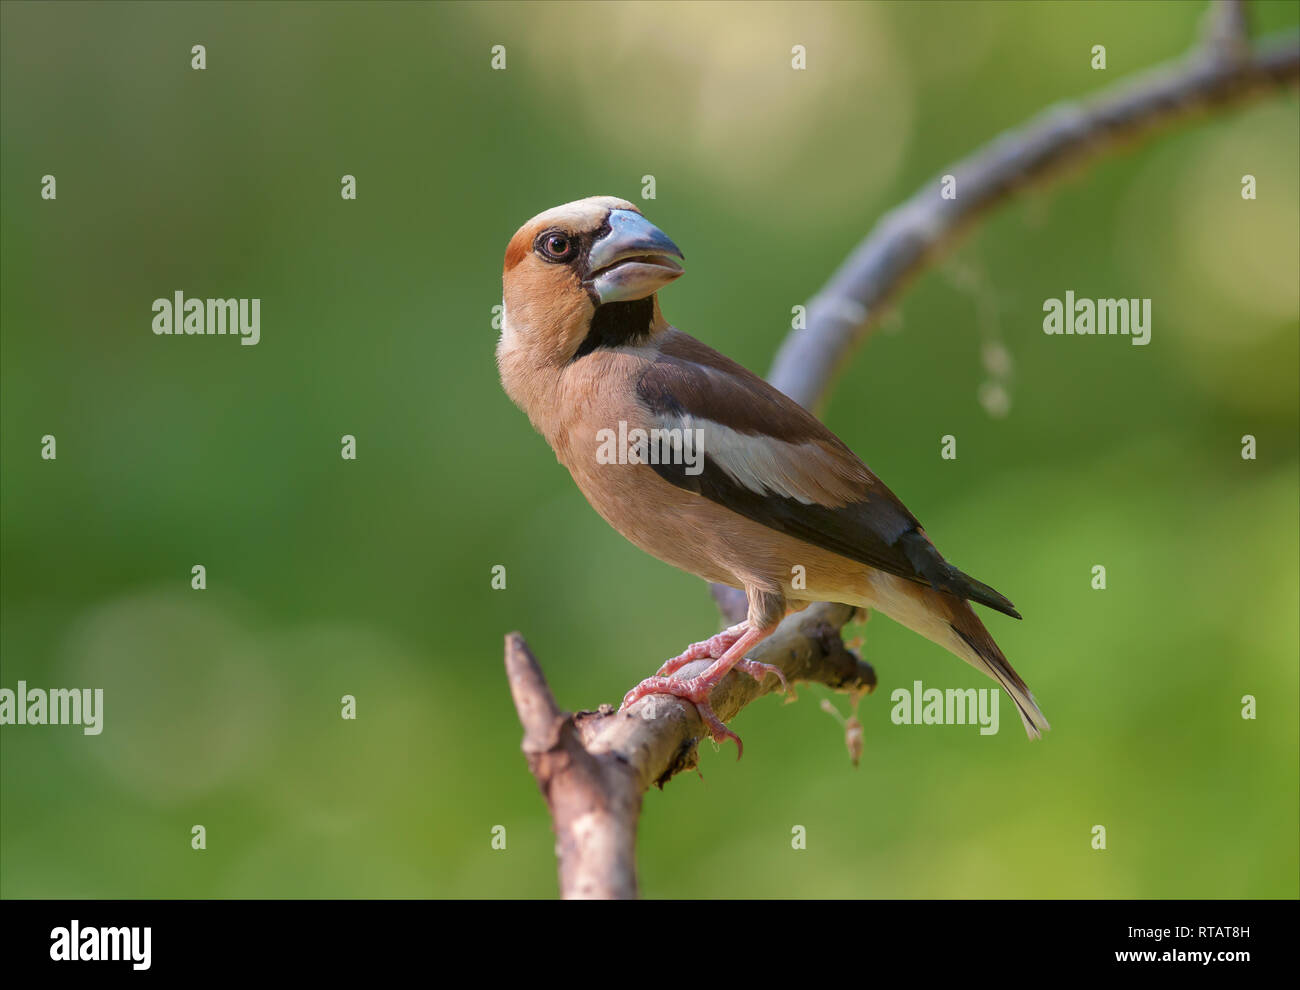 Hawfinch posing at small branch near a water pond - Stock Image